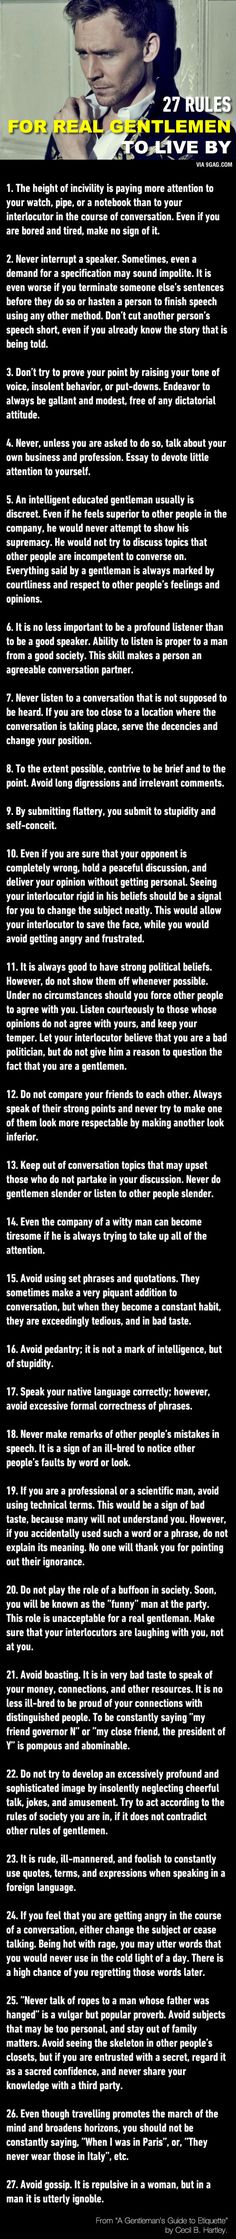 Rules to be gentleman, or lady. Mostly, how to be polite.